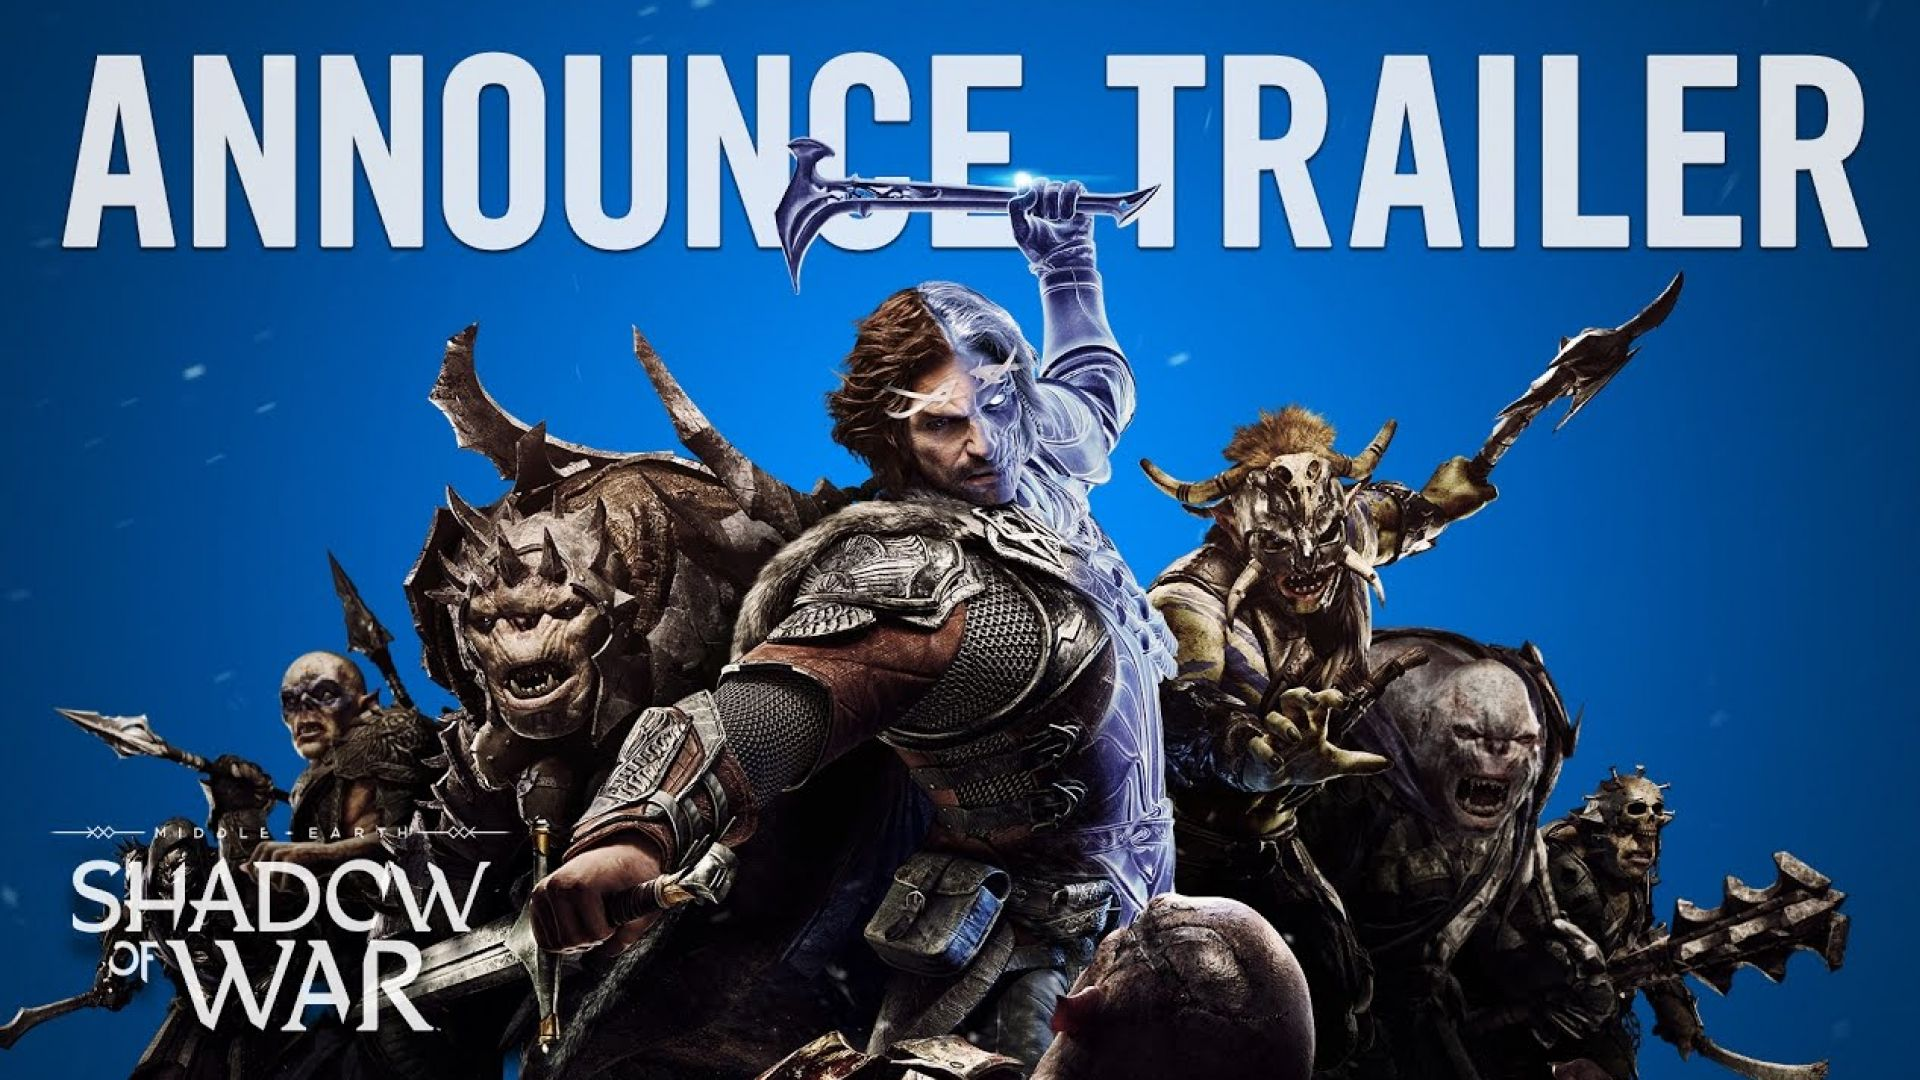 Announce trailer: Middle-Earth: Shadow of War to follow-up t